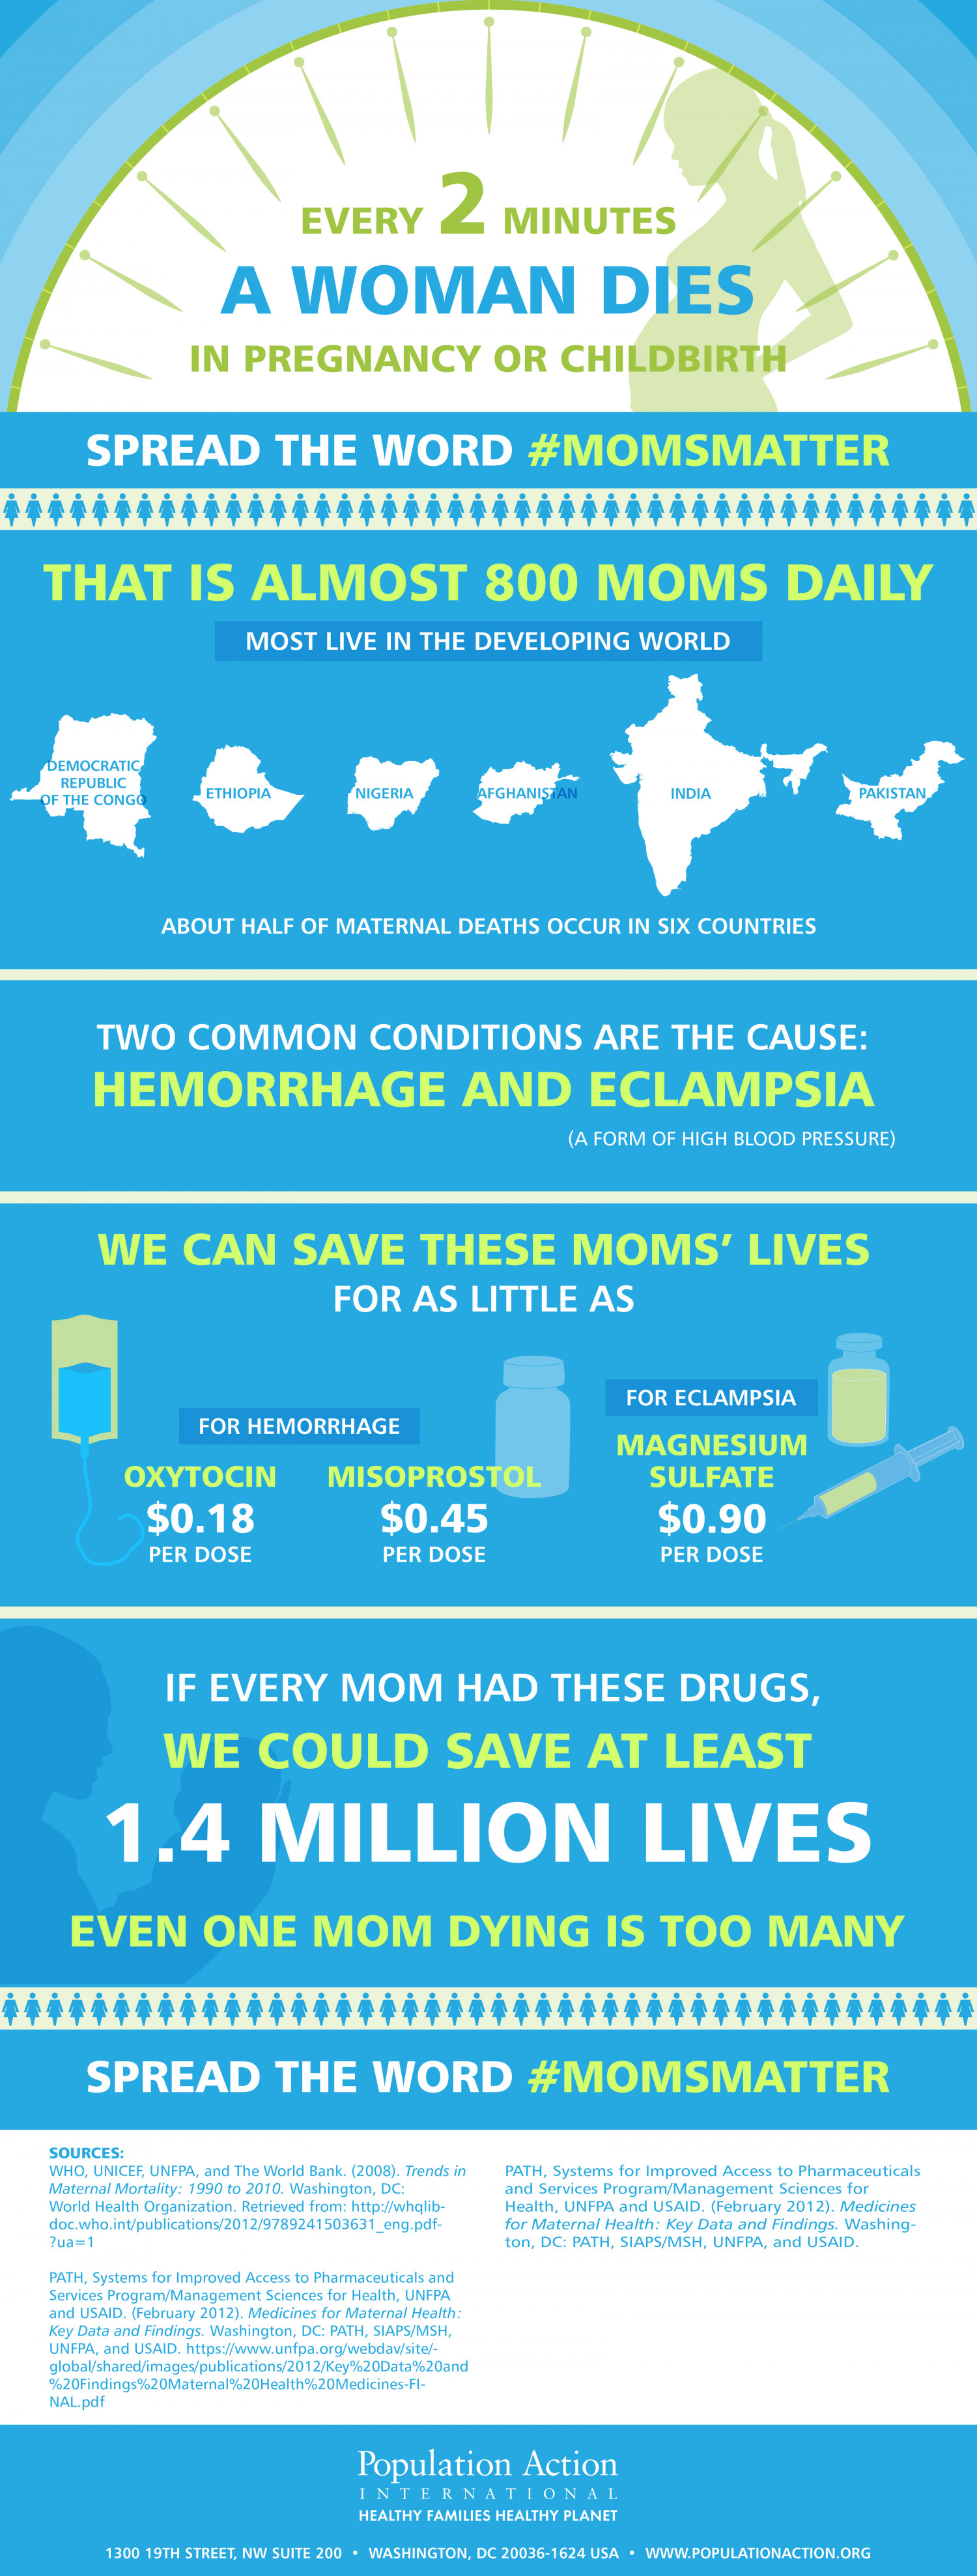 Do You Believe #MomsMatter? Infographic